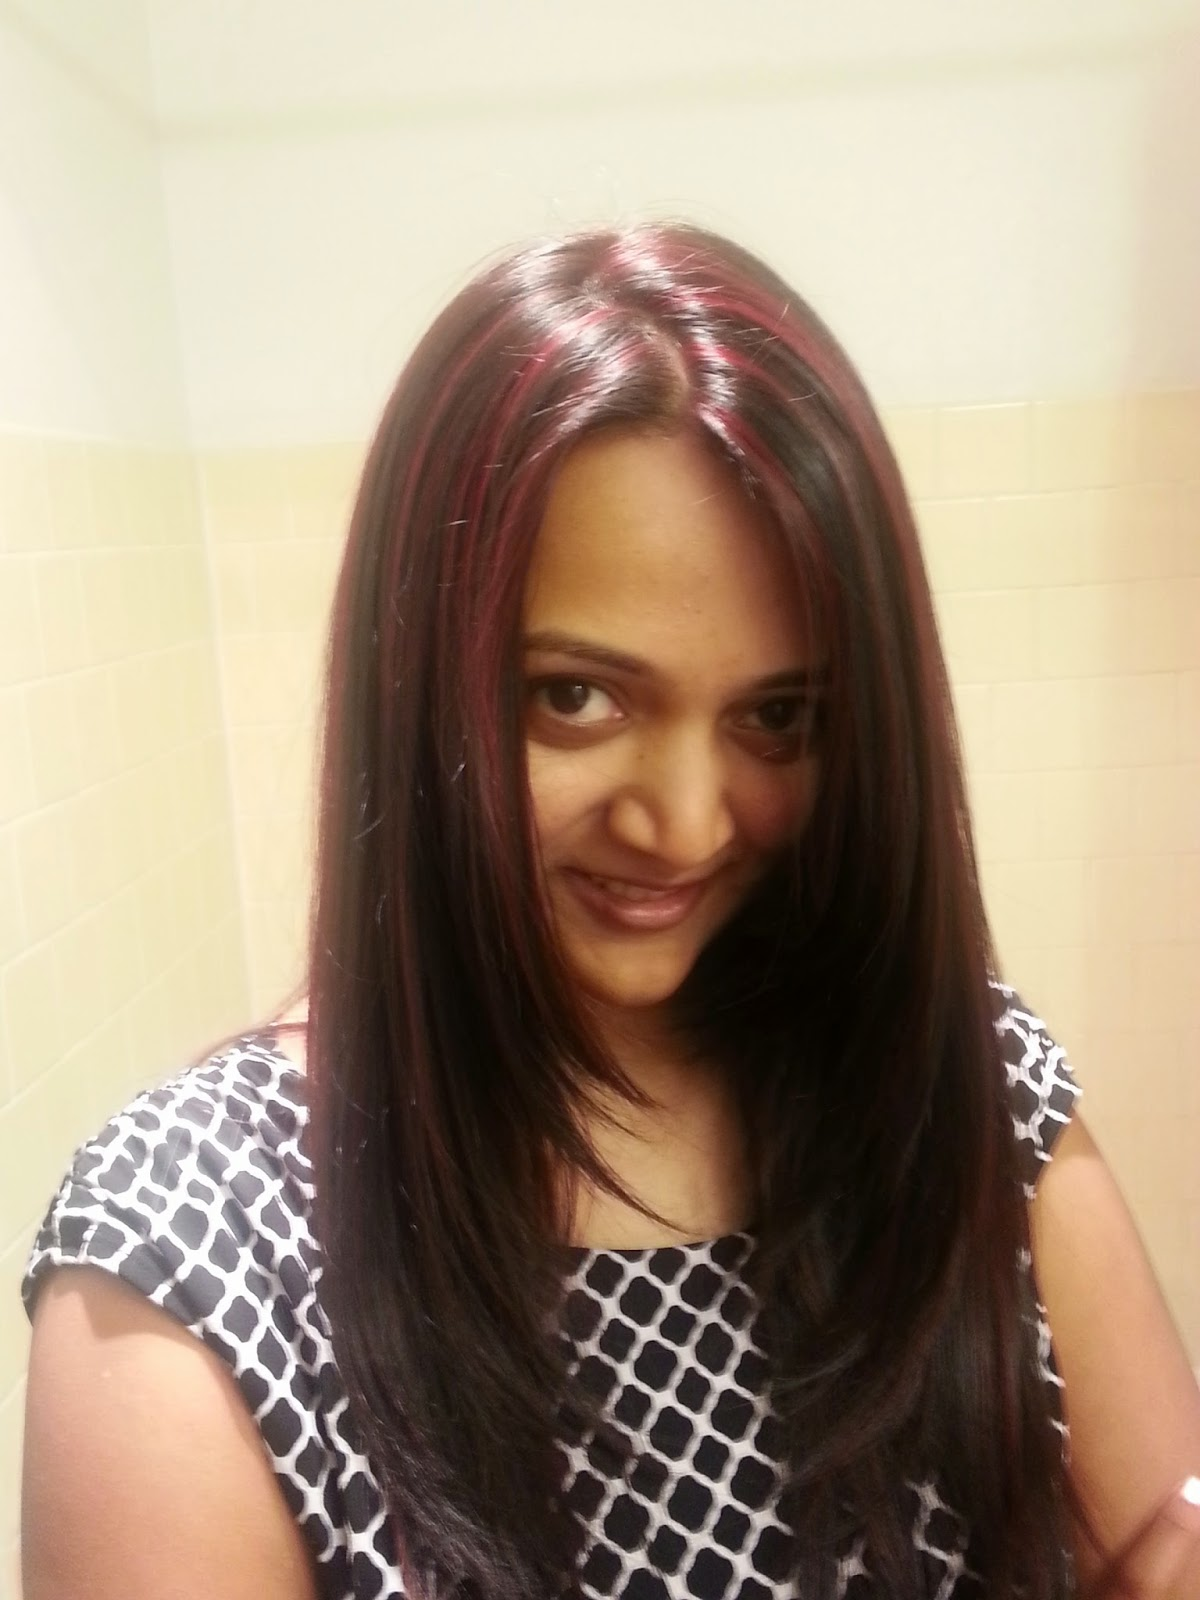 Red Highlights - 2 - Ananya Tales - photo#50